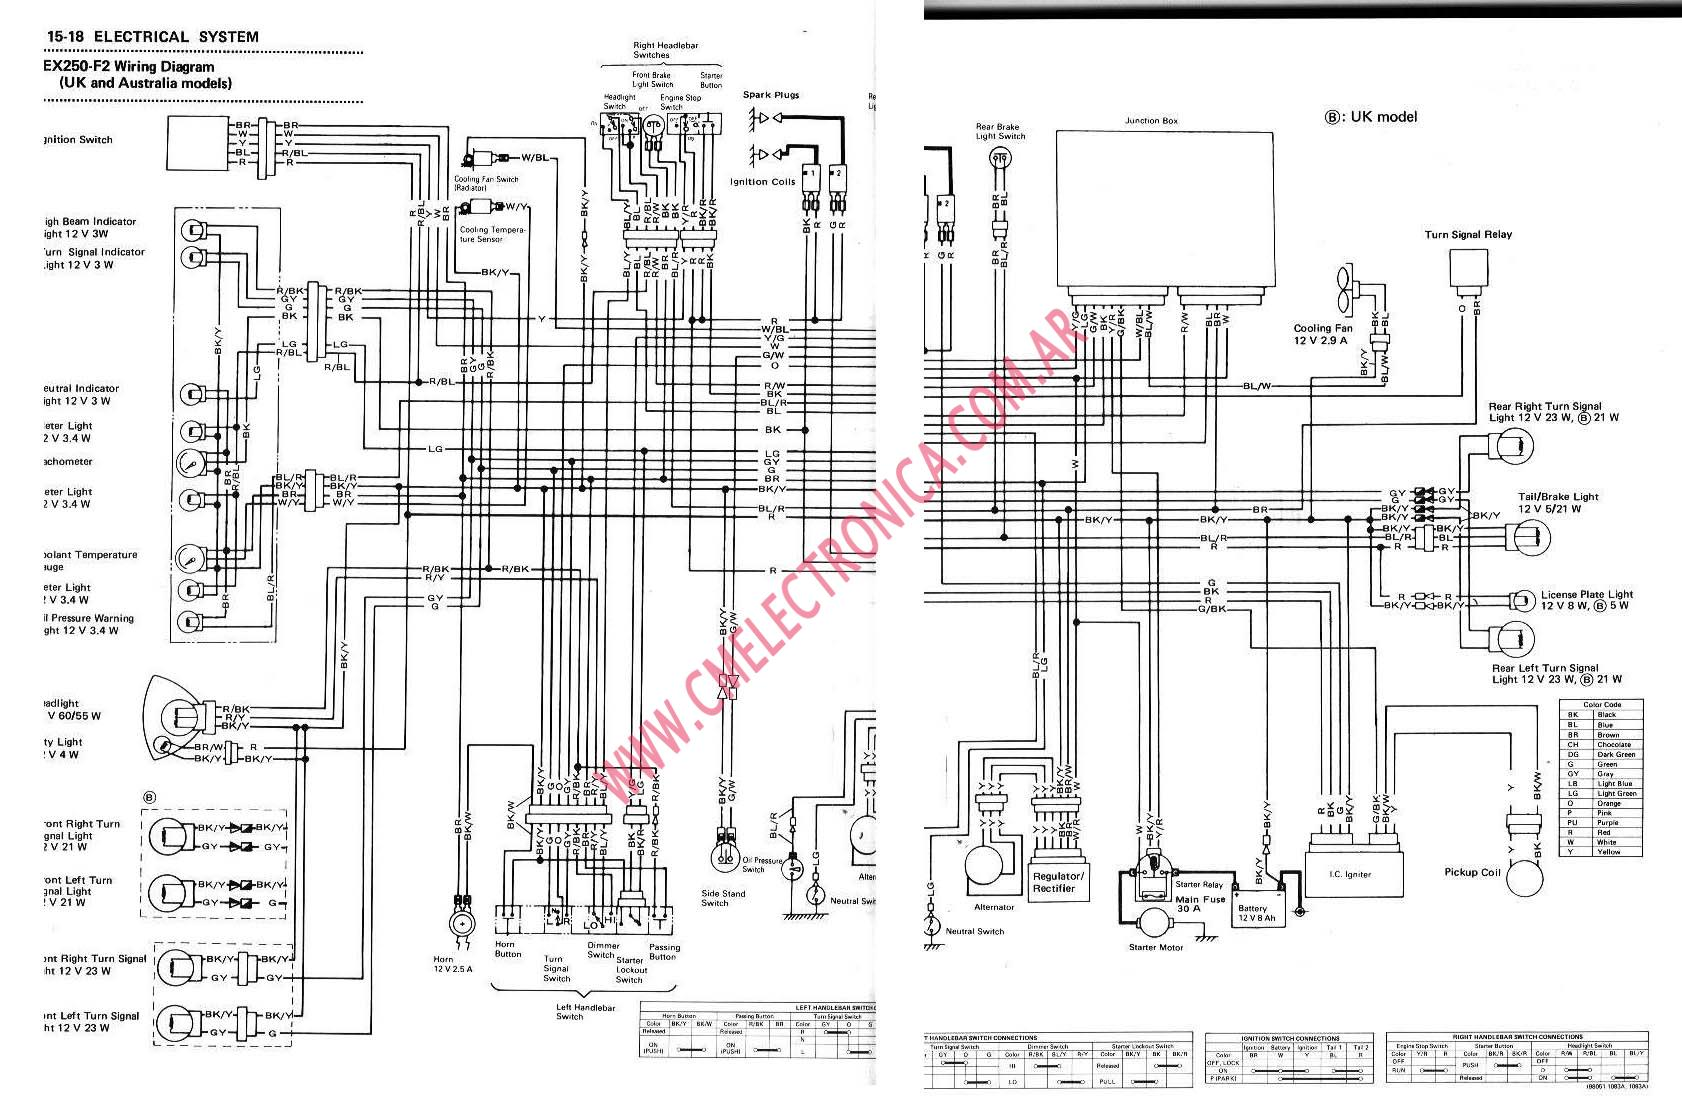 hight resolution of kawasaki 360 wiring diagram wiring diagram autovehicle2006 kawasaki prairie 360 wiring diagram wiring diagram perfomance2006 kawasaki